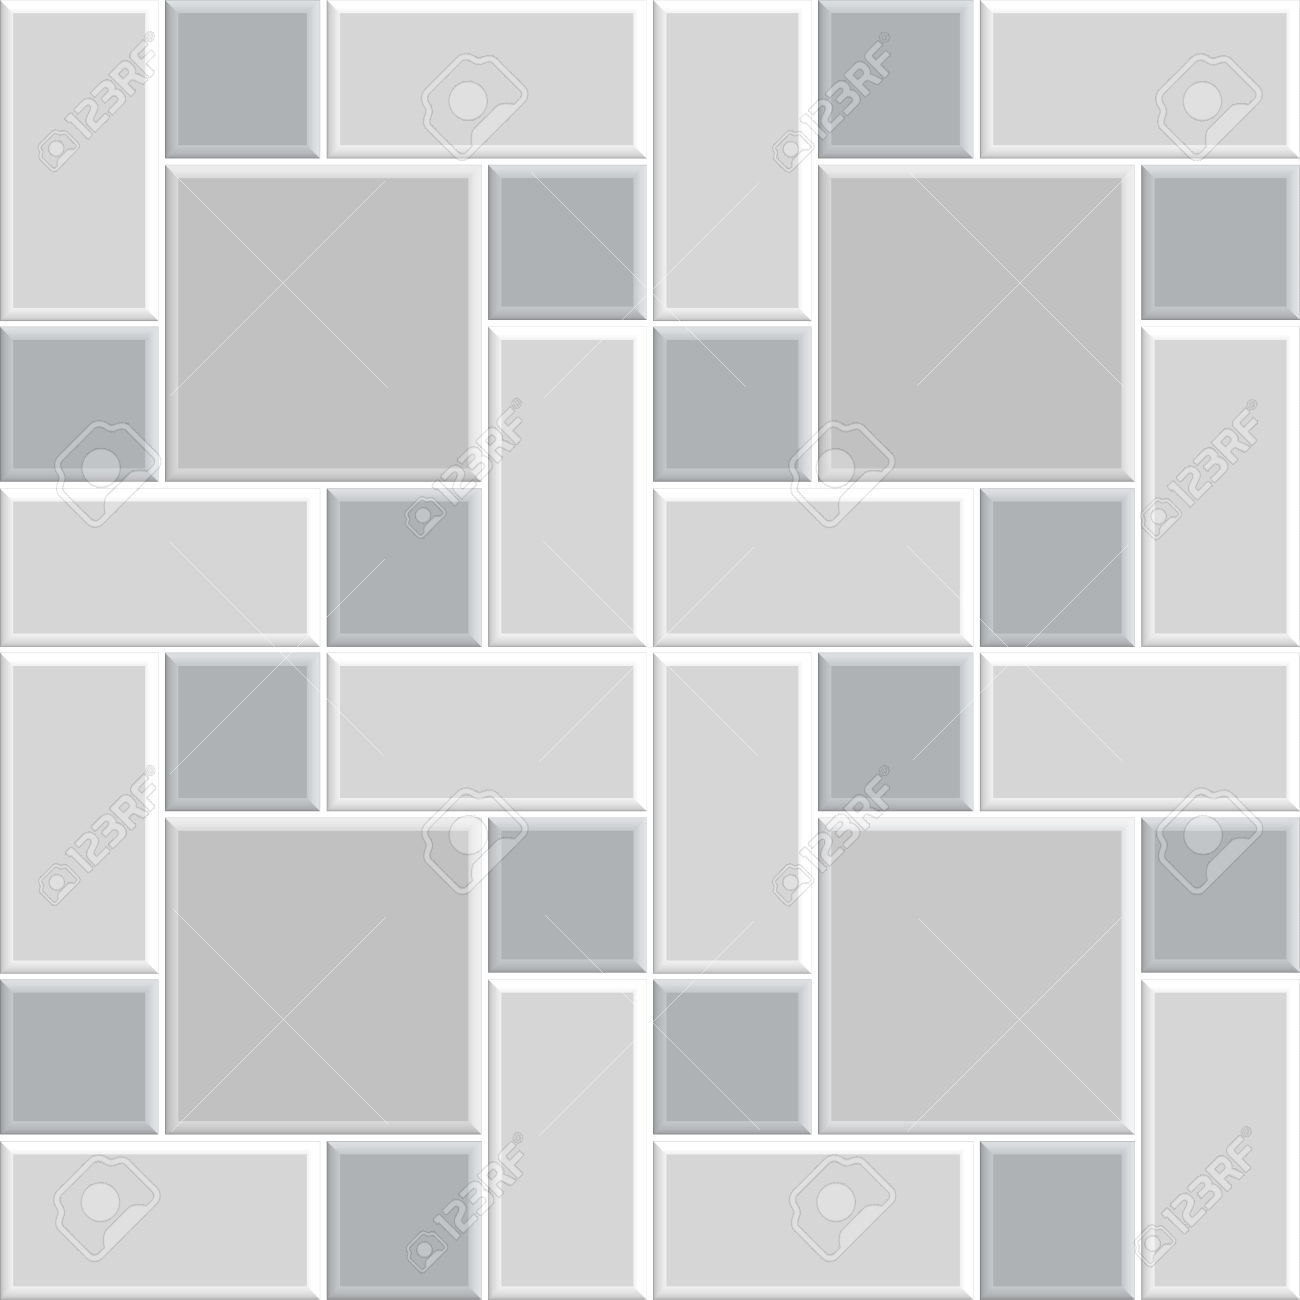 New Tile Texture Clipart 20 Free Cliparts Download